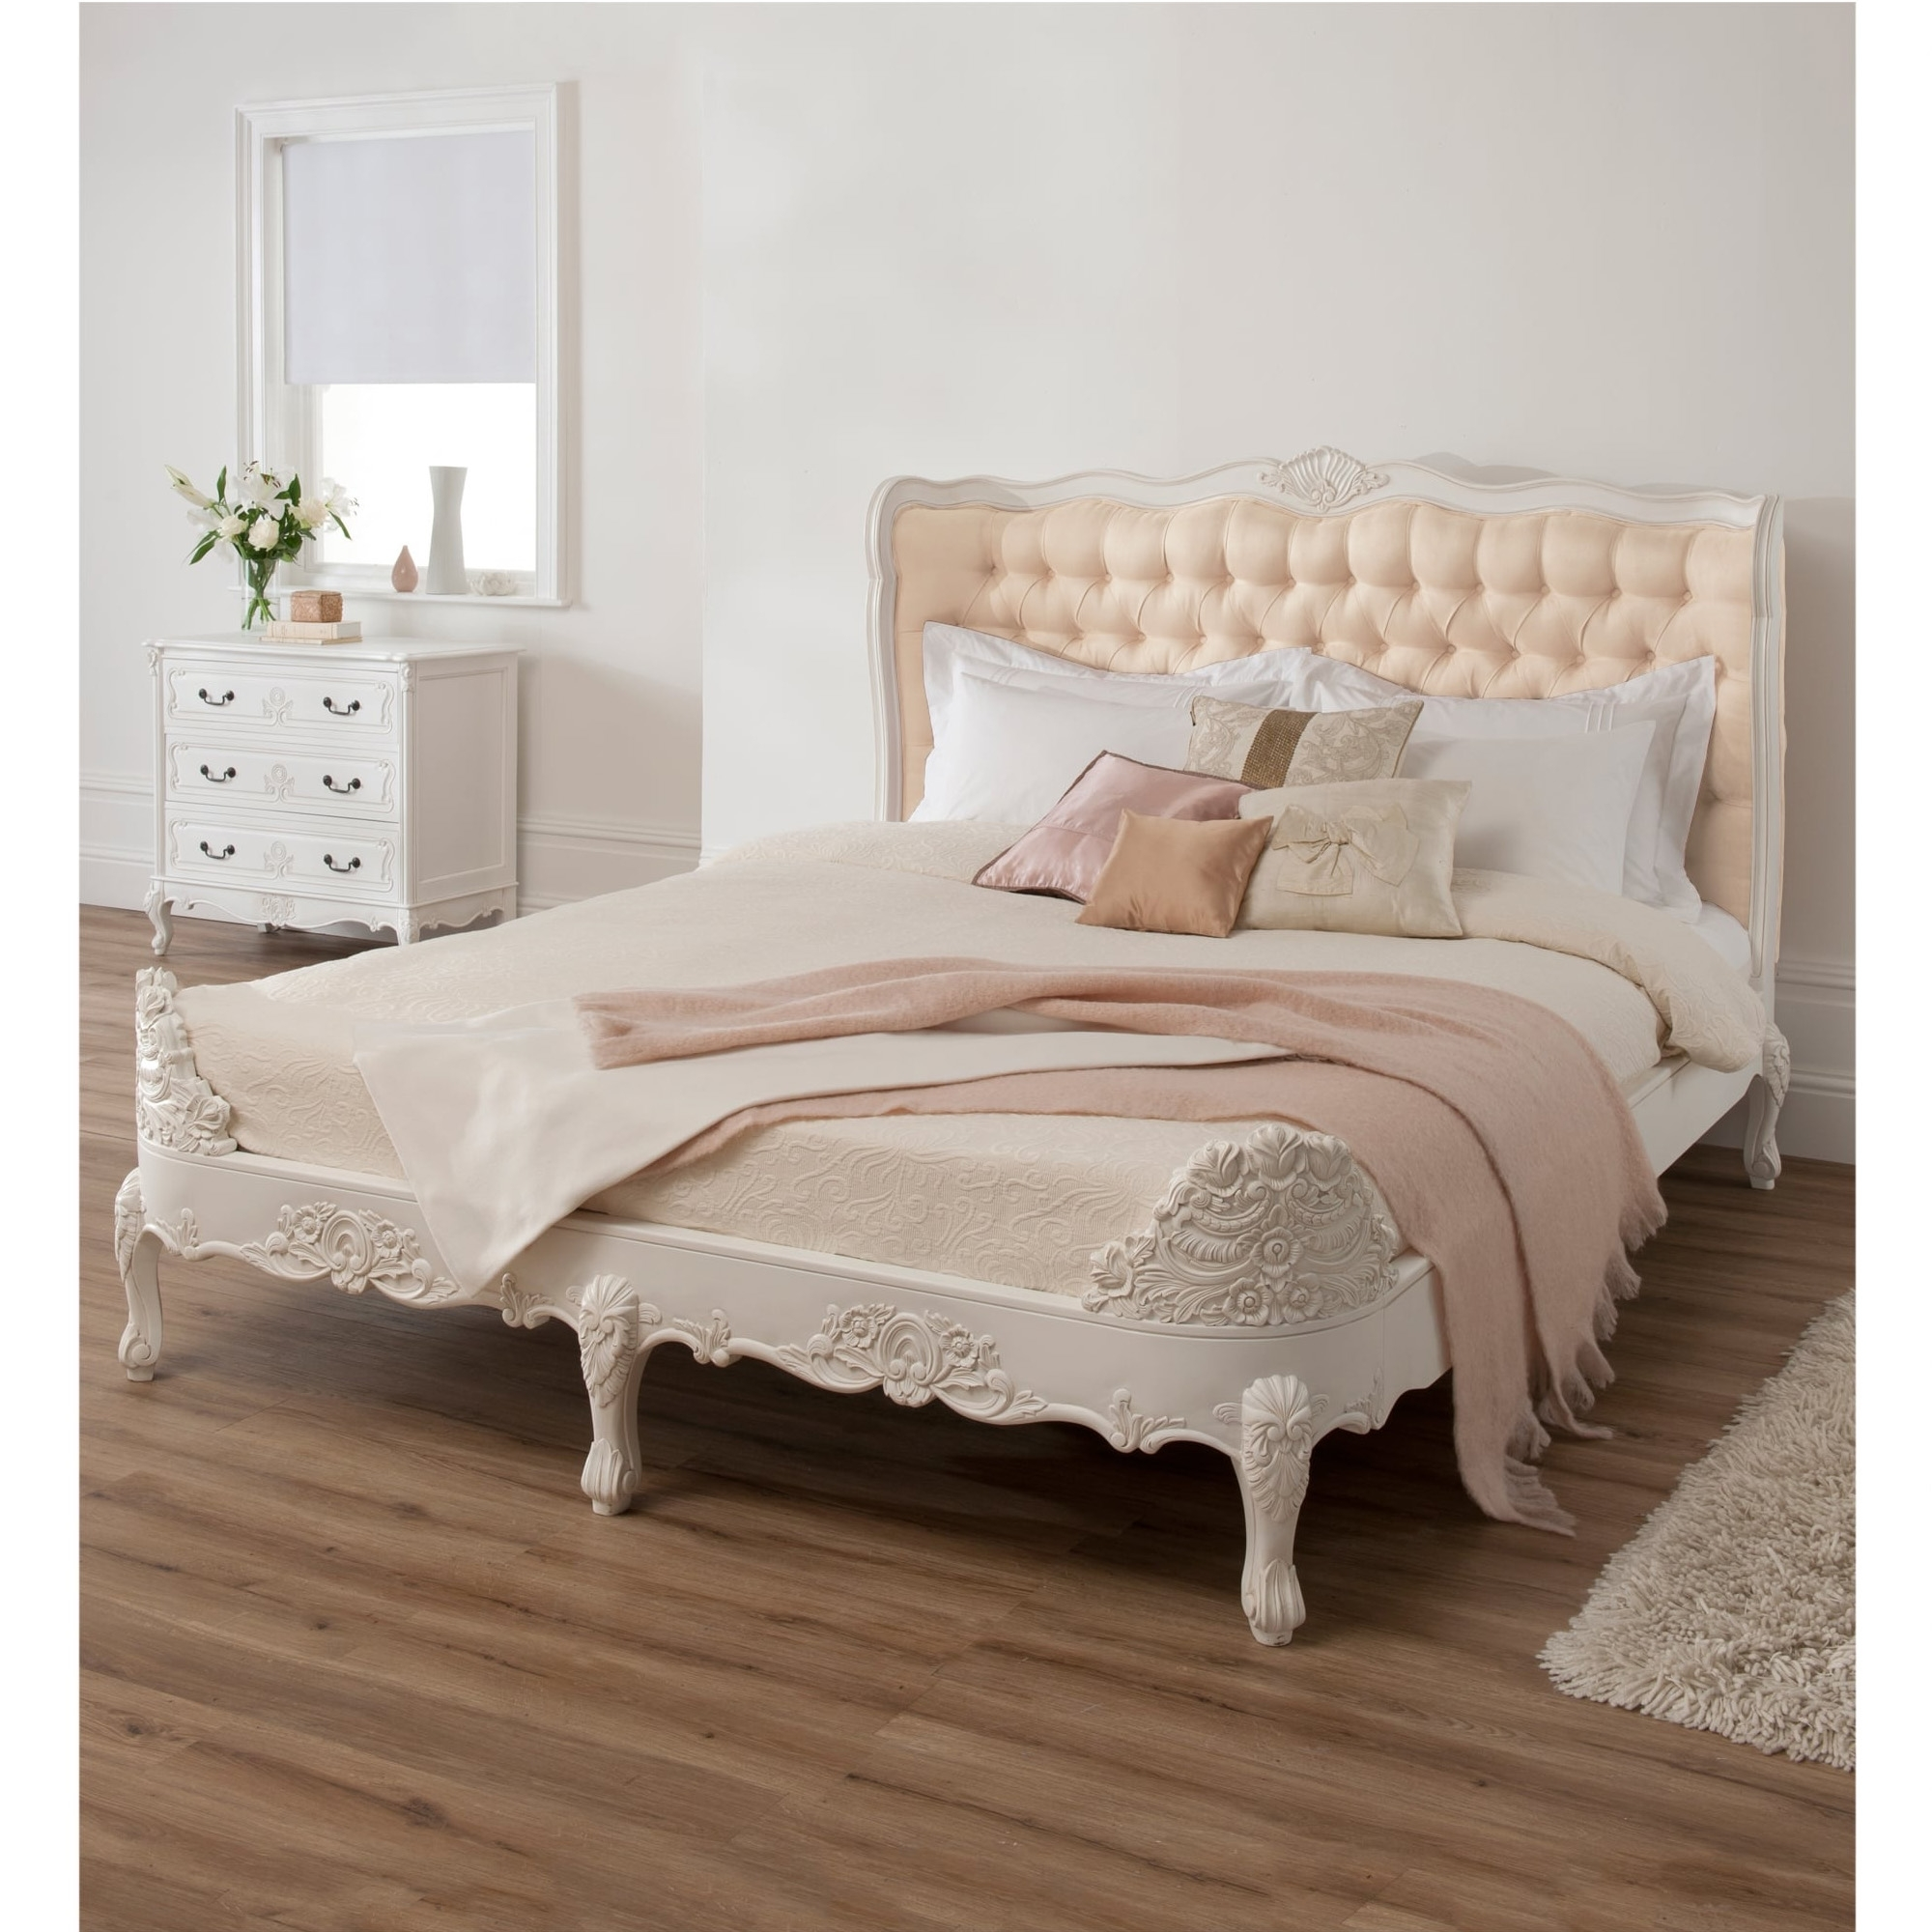 White Baroque Upholstered Bed Hand Carved Antique French Furniture